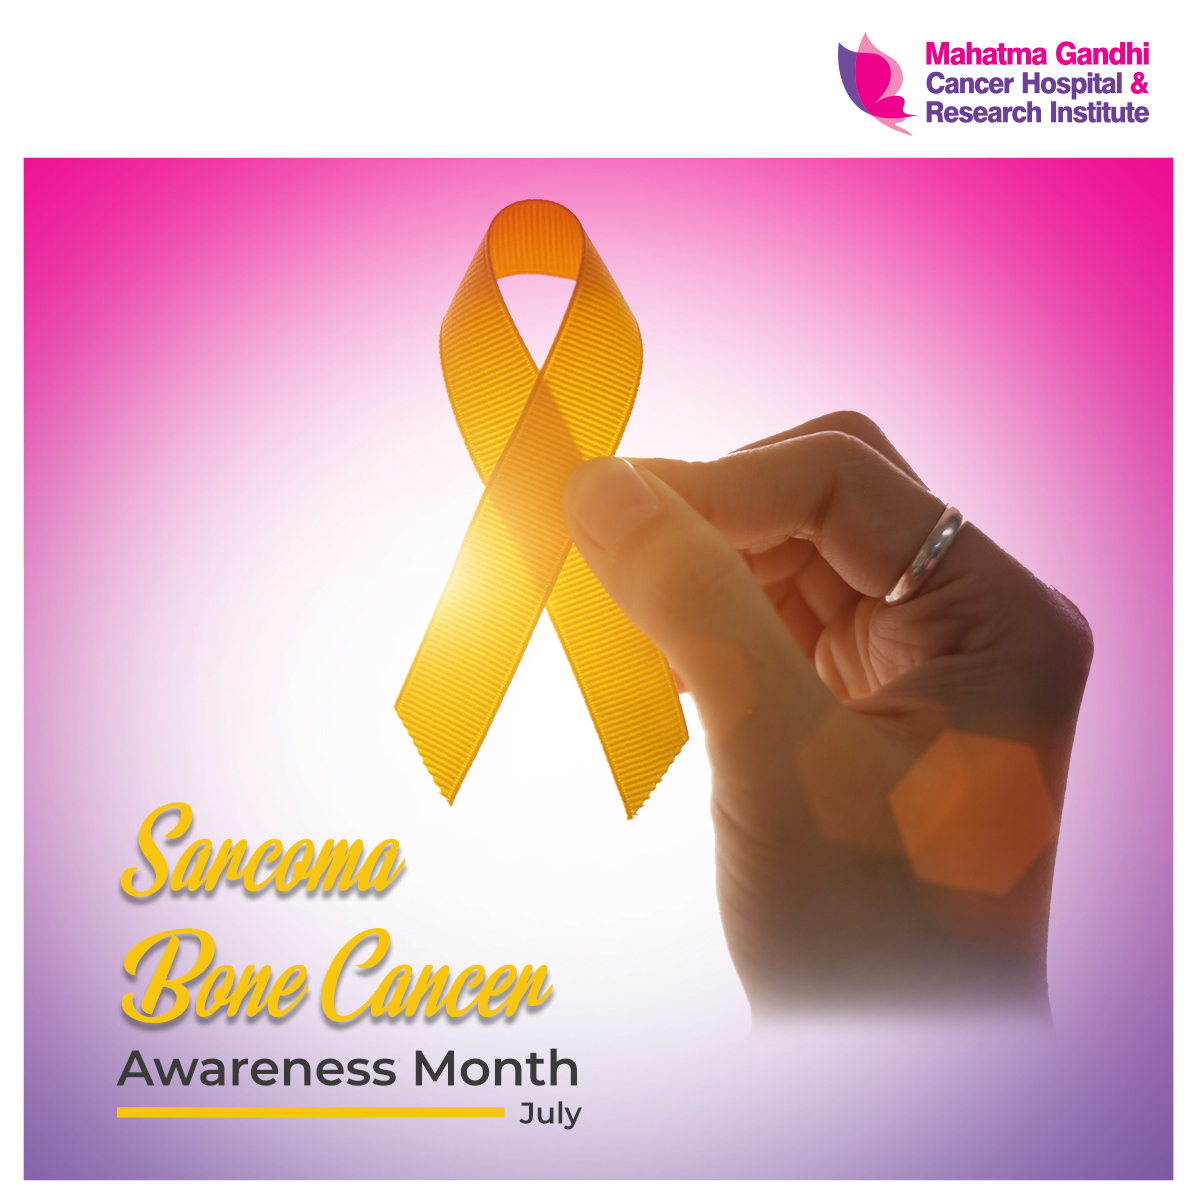 July is Sarcoma/Bone Cancer Awareness Month! People can survive sarcoma if their cancer is diagnosed early, when treatments can be effective and before the sarcoma has spread to other parts of the body. #MGCHRI #CancerCare #SarcomaCanceraAwarenessMonth